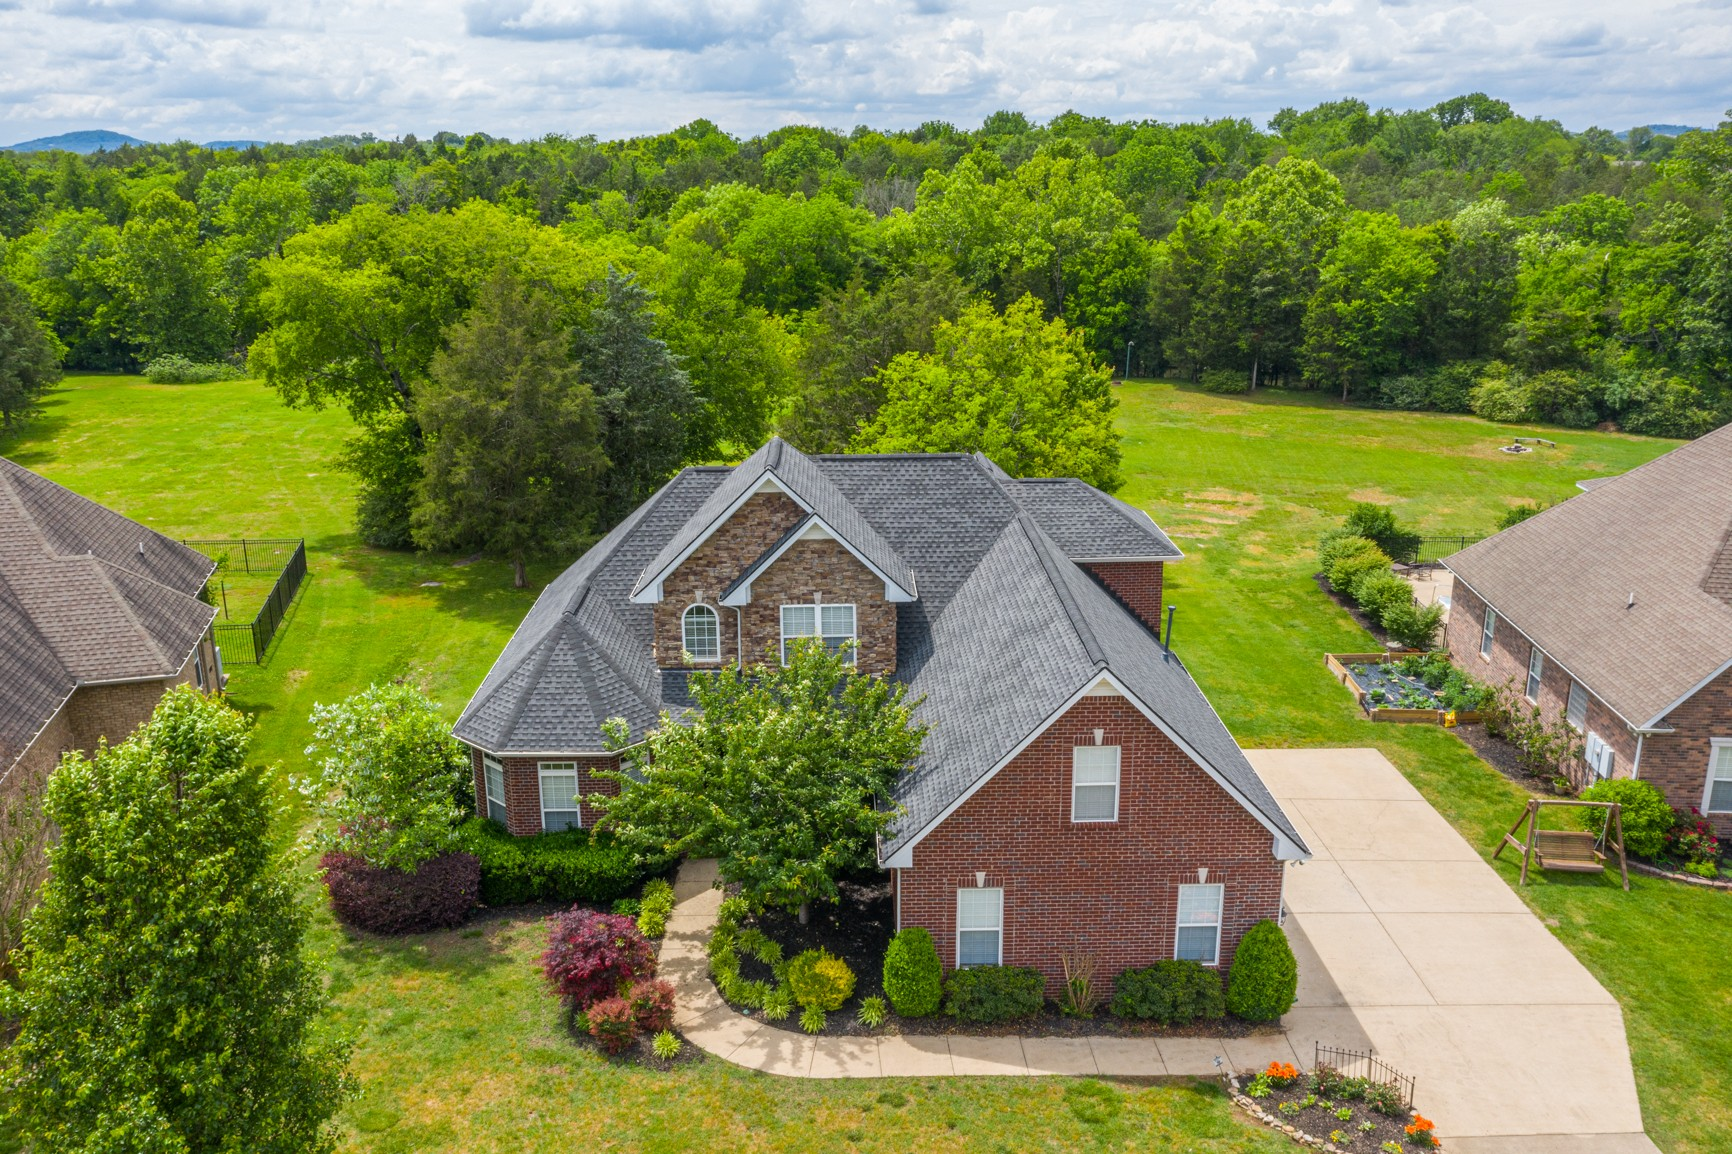 Rare Find! 1.15 acres in prime location!  Creek lot!  Triple Blackman schools, All brick home updated with granite, refinished hardwoods,  fresh paint, shiplap, new fixtures. Mac tiled shower,  Laundry shoot, Roof only 3 yrs old.  Pool table & storage shed stays. Ref. nego.